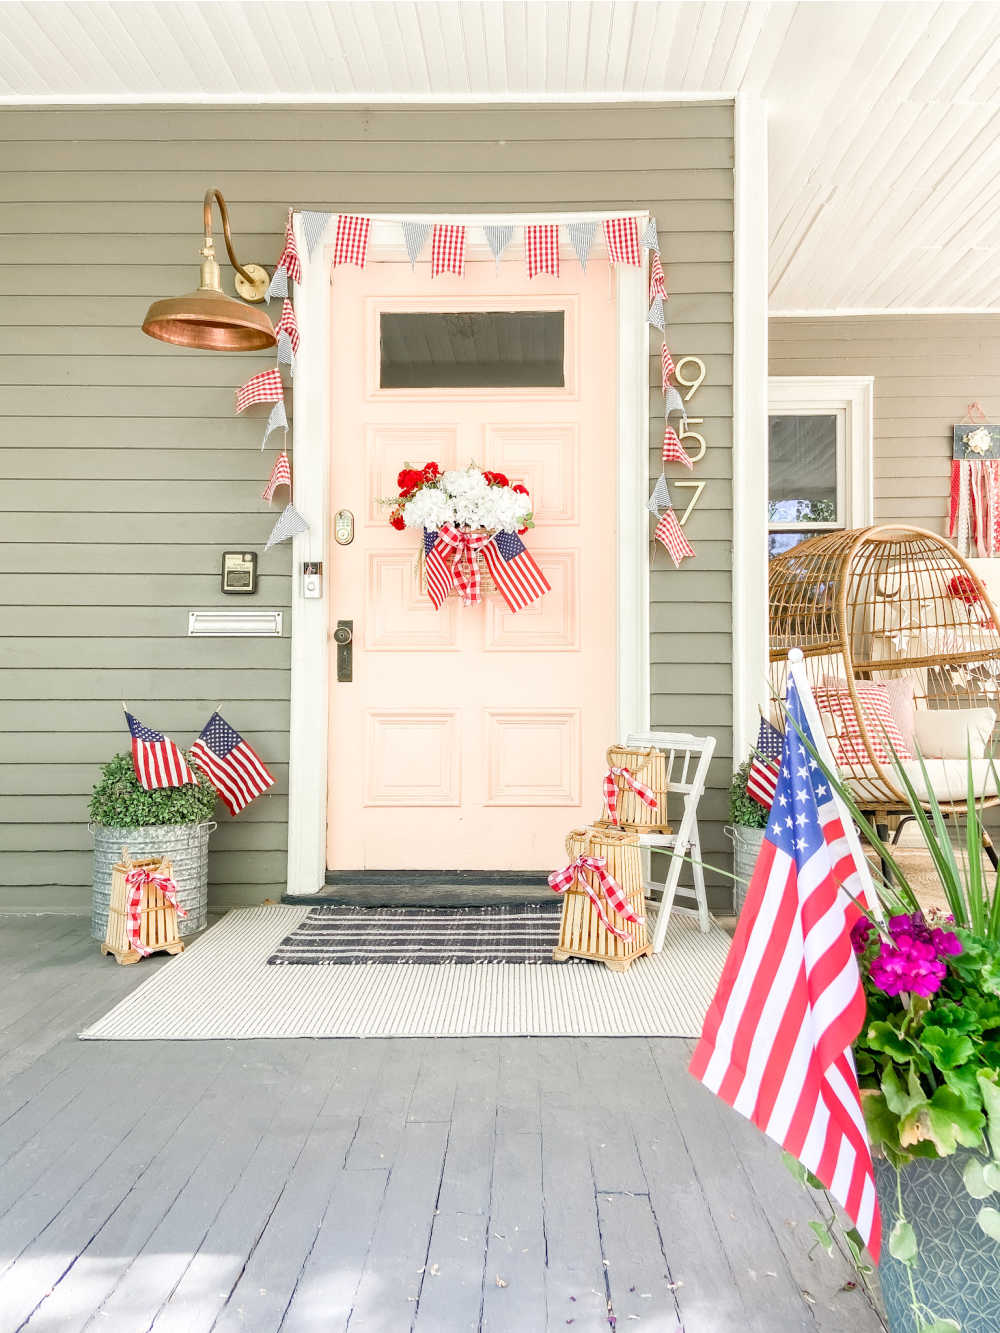 Easy Way to Add Charm to Your Outdoor Spaces. Here are FIVE easy ways to add some red white and blue summer charm to your porch or patio!